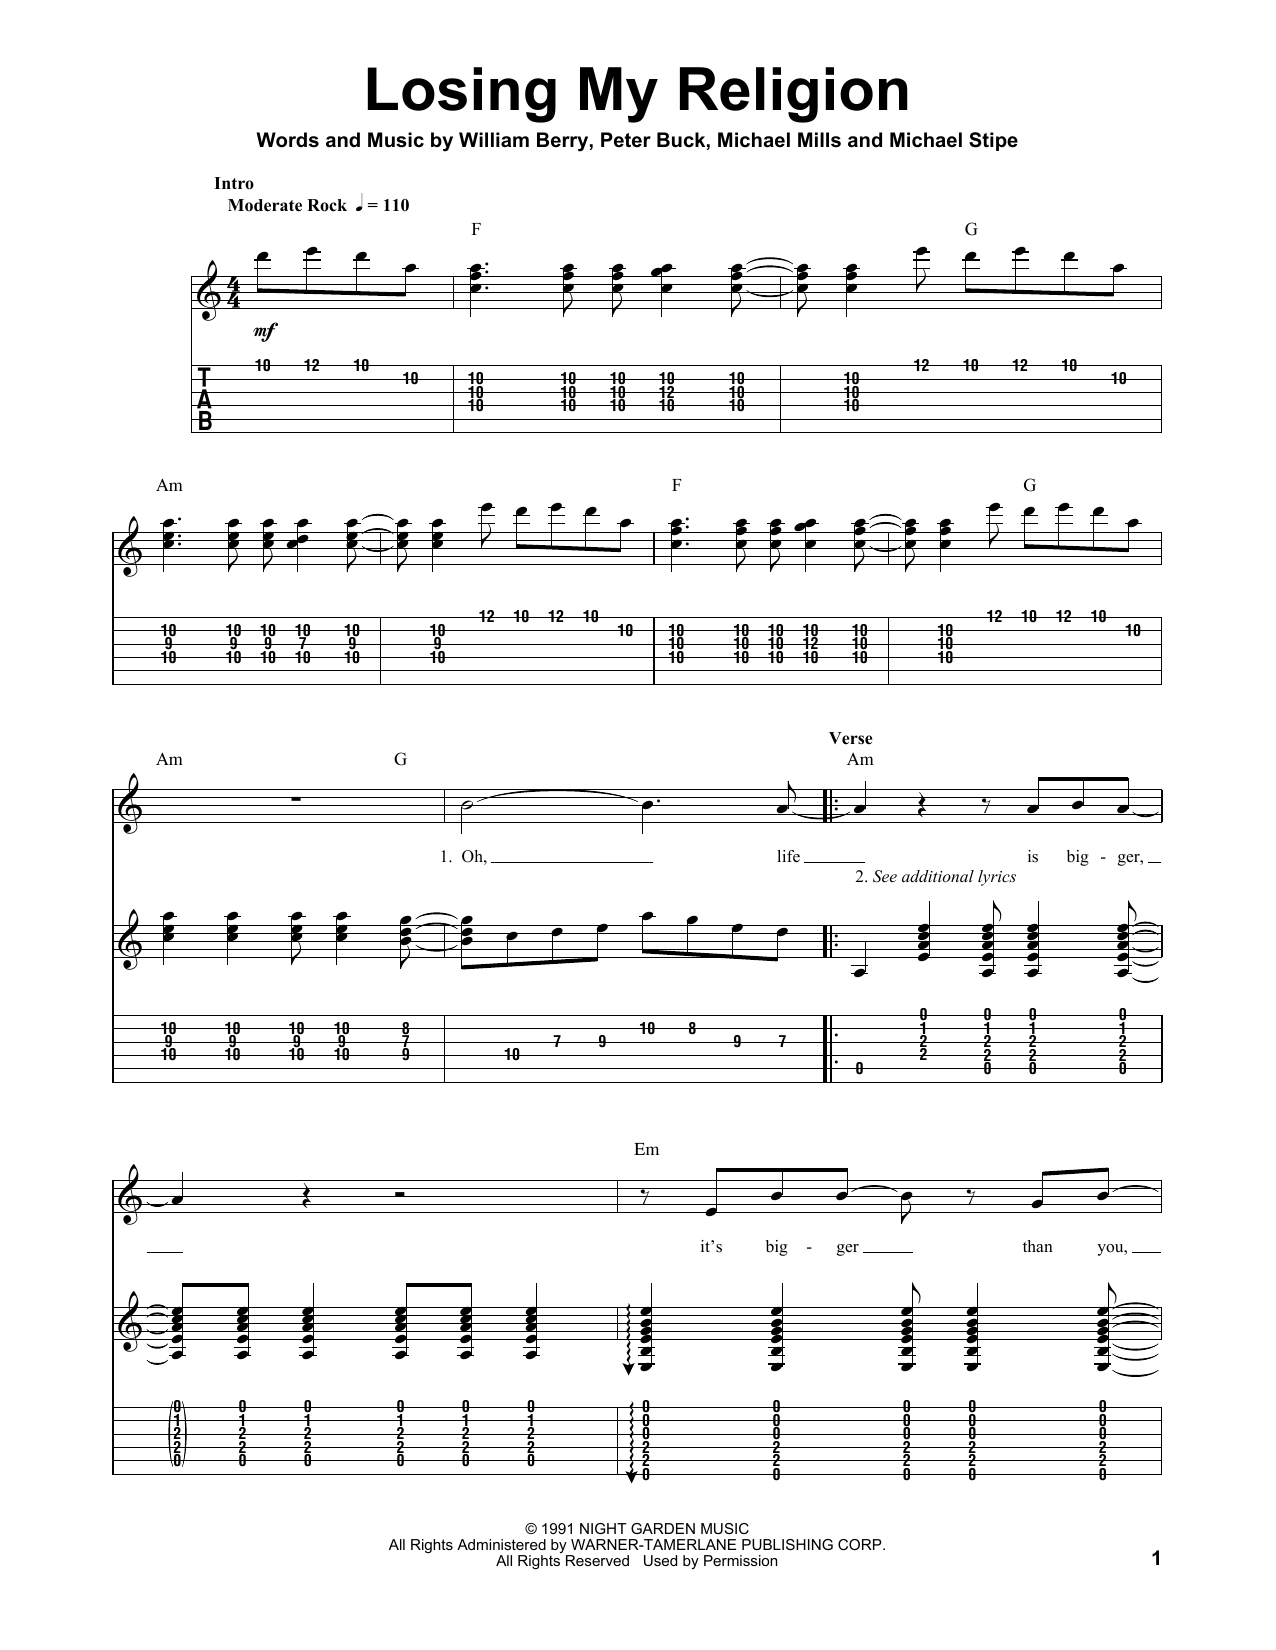 Losing My Religion : Sheet Music Direct